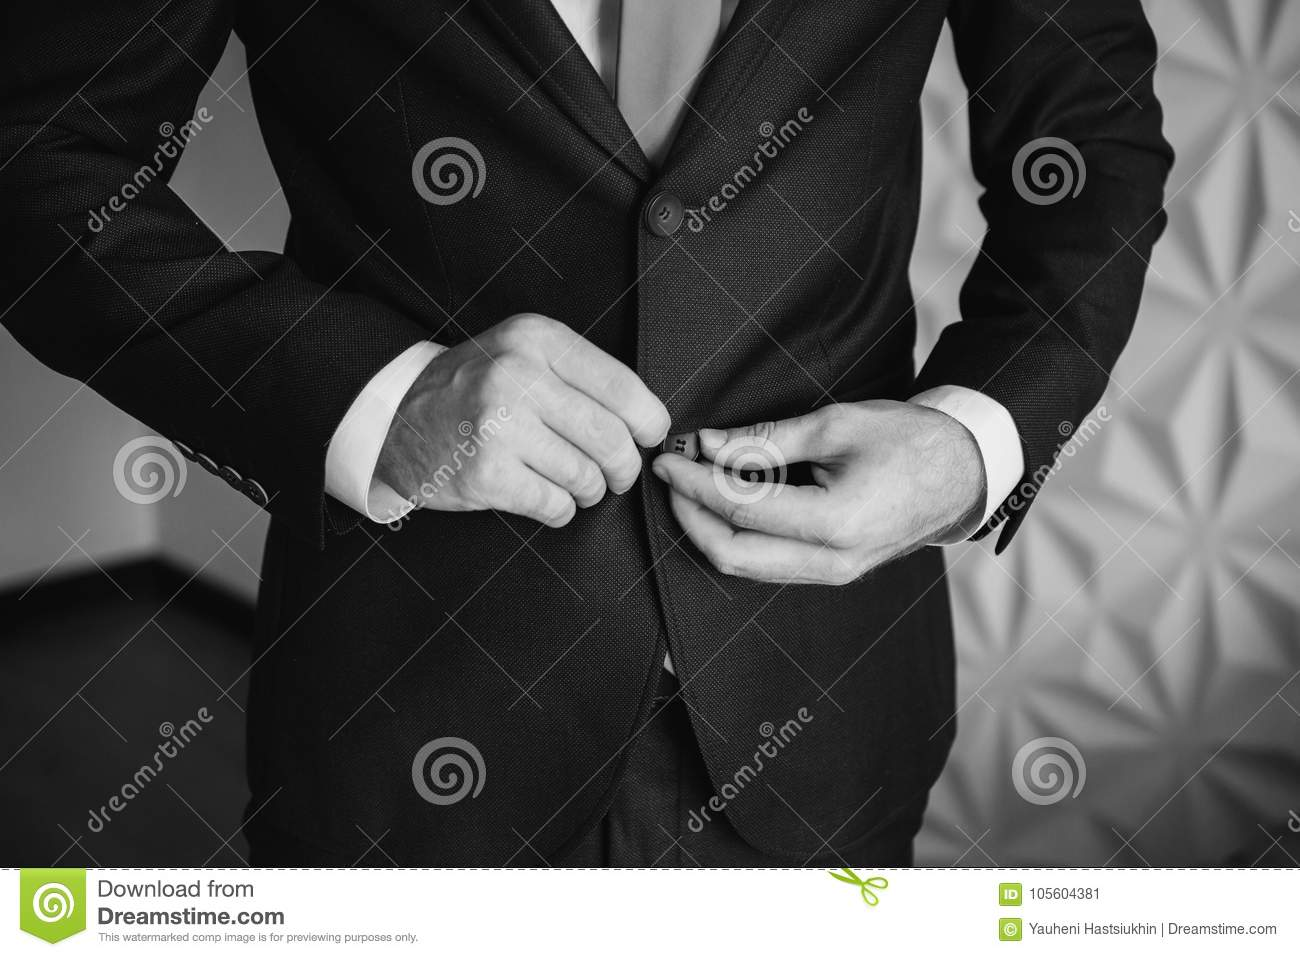 Black and white art photography monochrome man buttoning his waistcoat on mens style professions preparing to work on an appointment